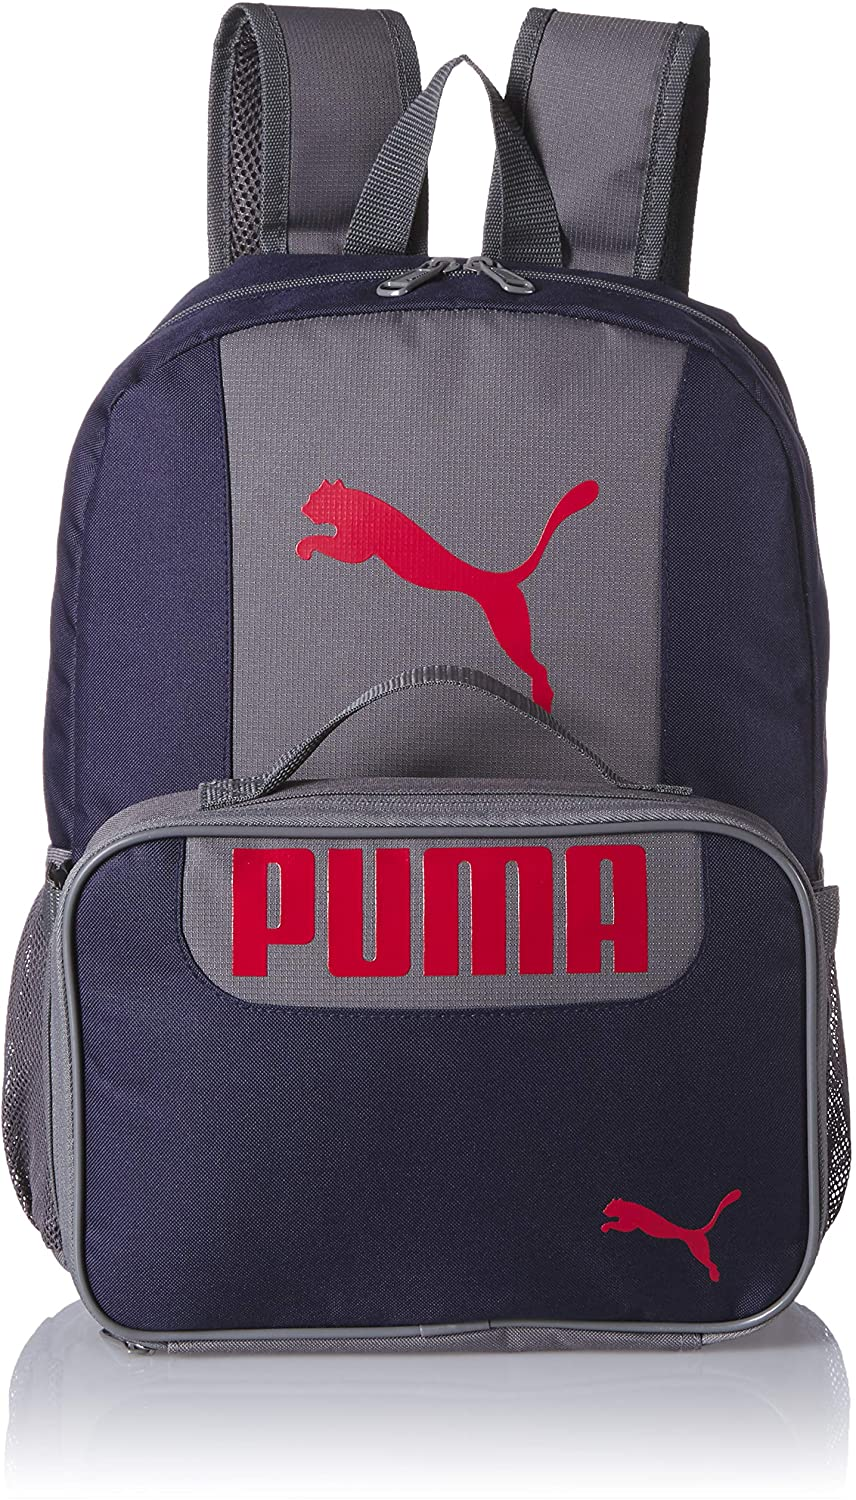 PUMA Lunch Box Backpack Combo For Boys